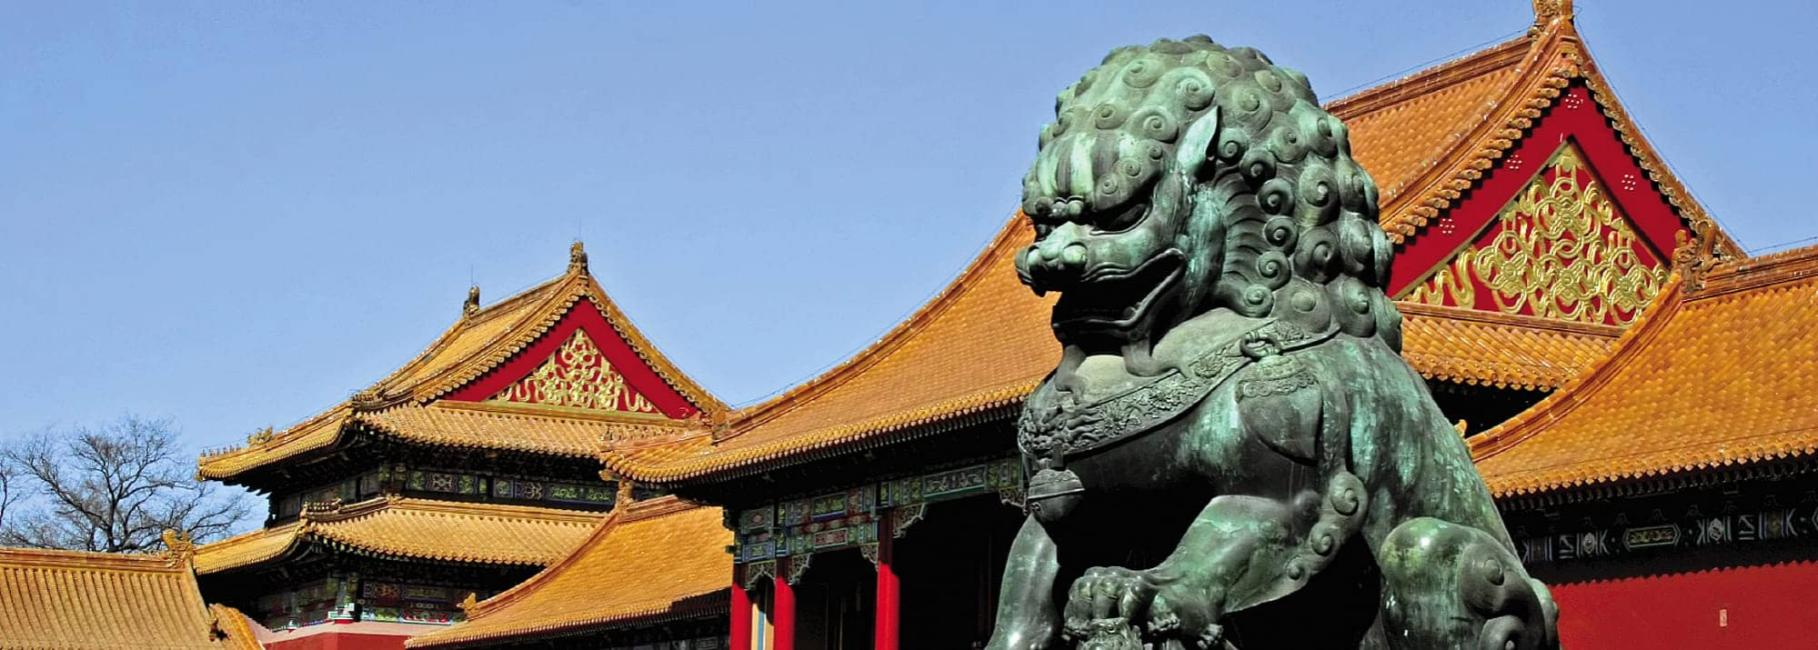 china beijing history trip header nst